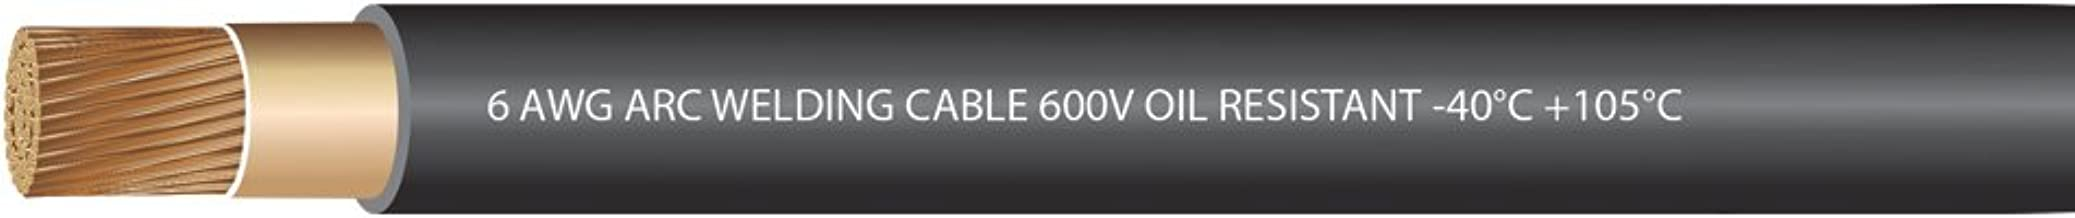 EWCS 6 Gauge Premium Extra Flexible Welding Cable 600 Volt - Black - 25 Feet - Made in the USA